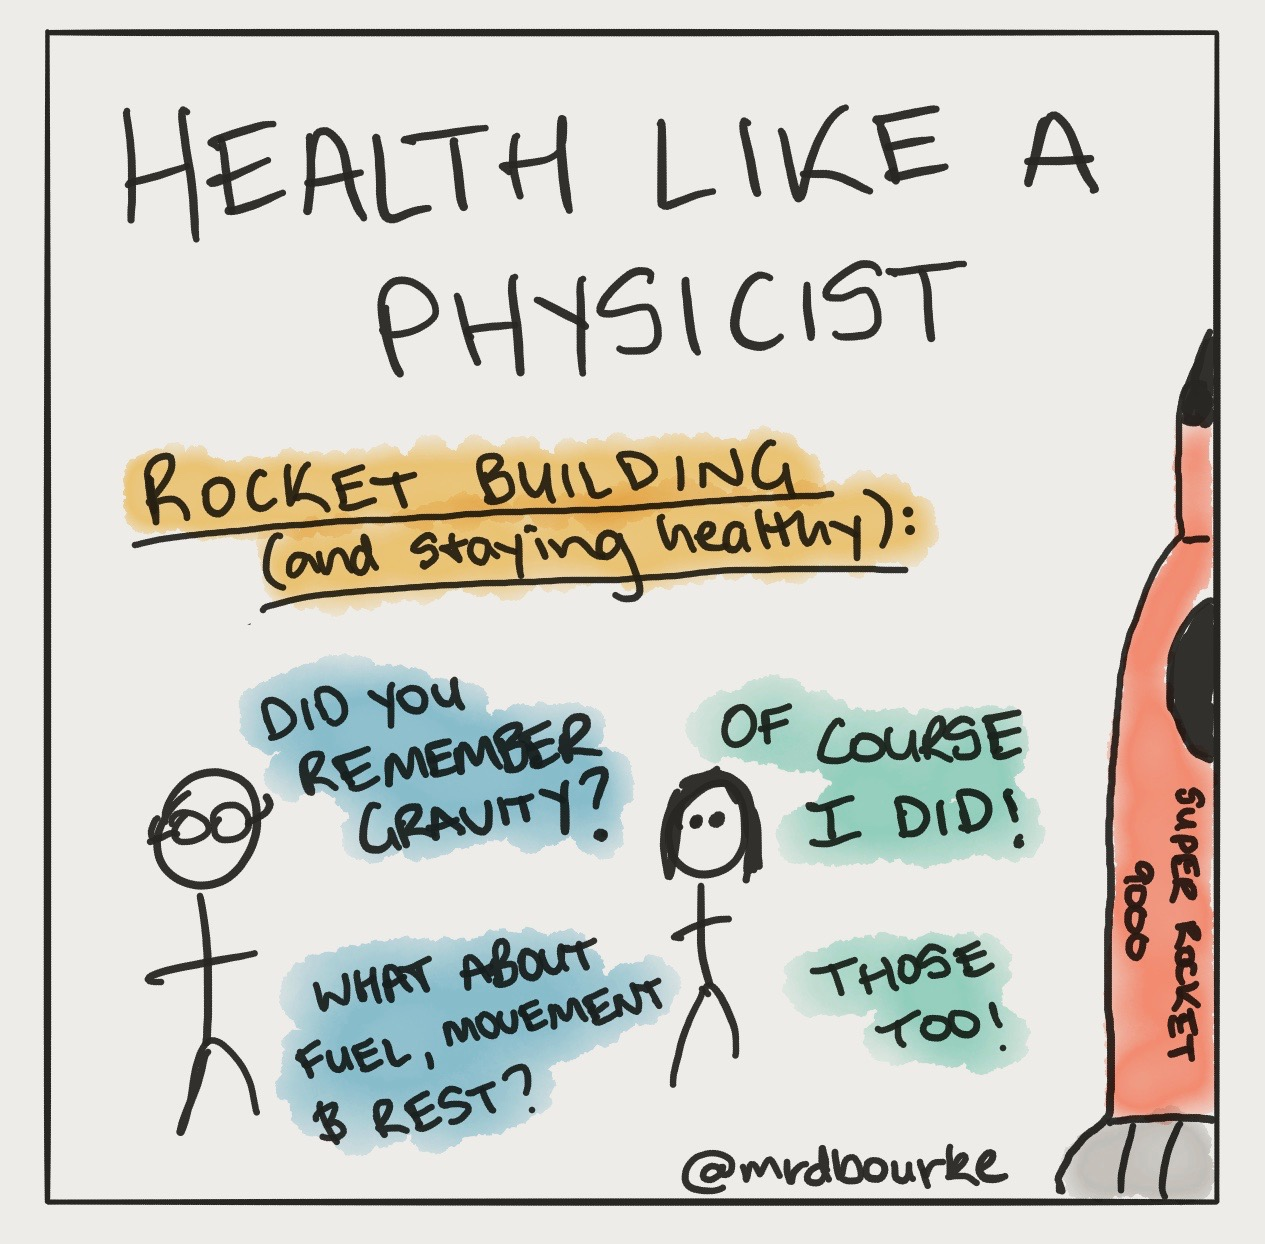 Just like gravity is crucial to rocket design, food, movement and sleep are crucial to health.